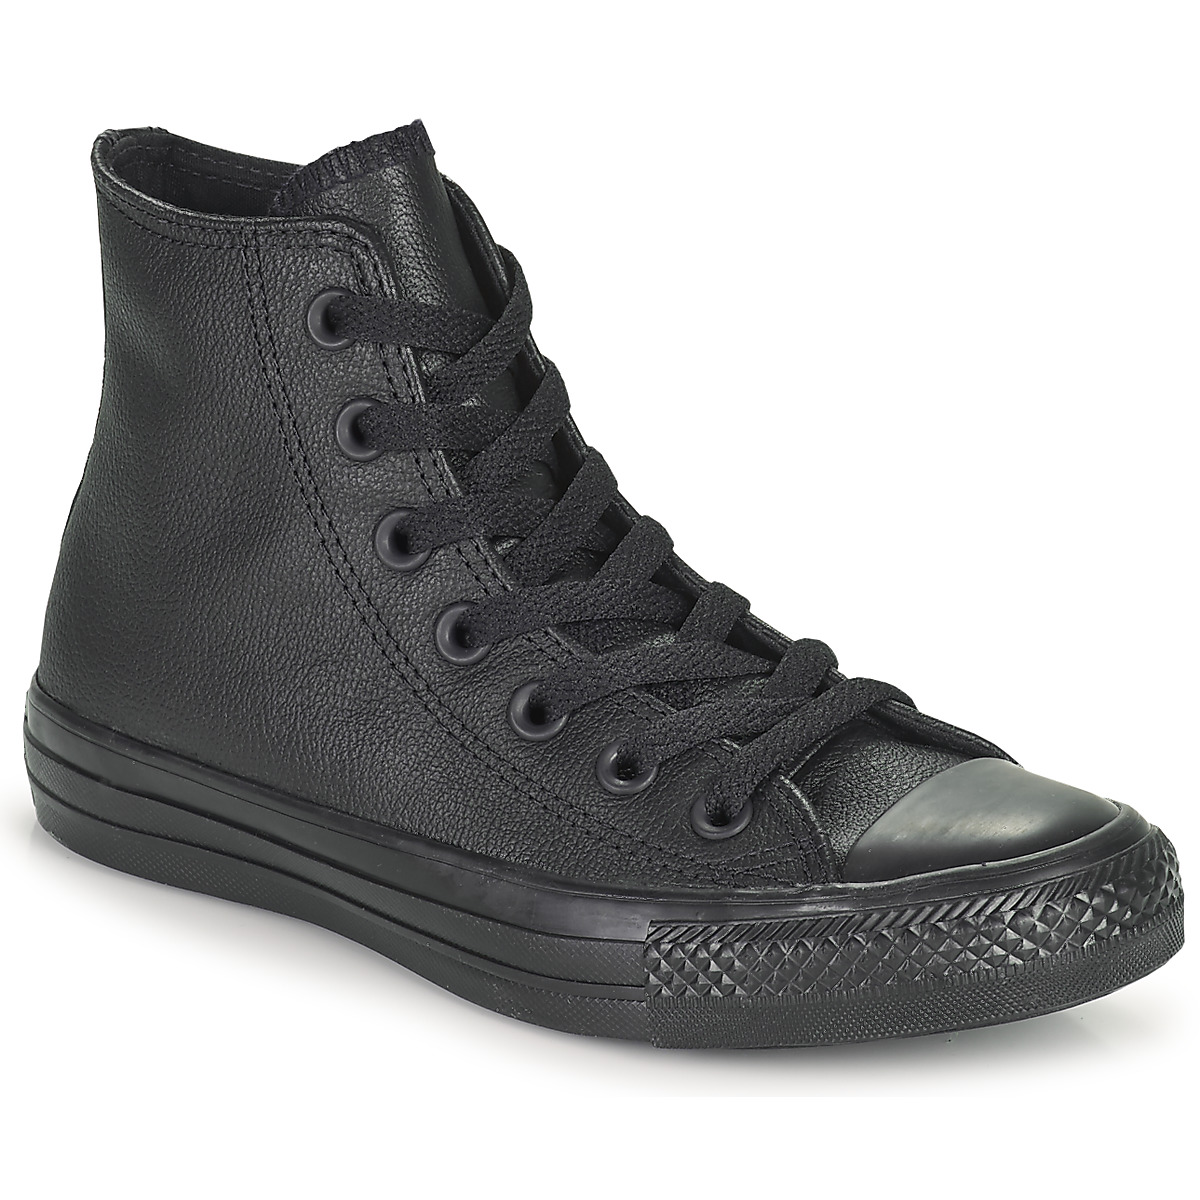 Converse ALL STAR LEATHER HI Black